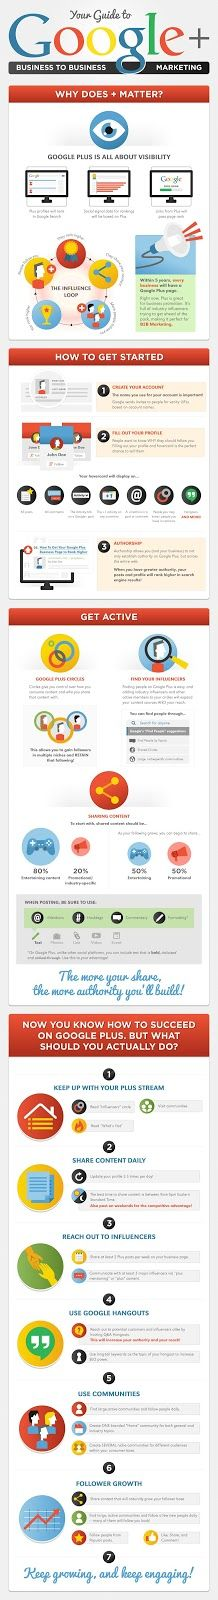 publish my docs: Your Guide to GooglePlus Business to Business Marketing - infographic